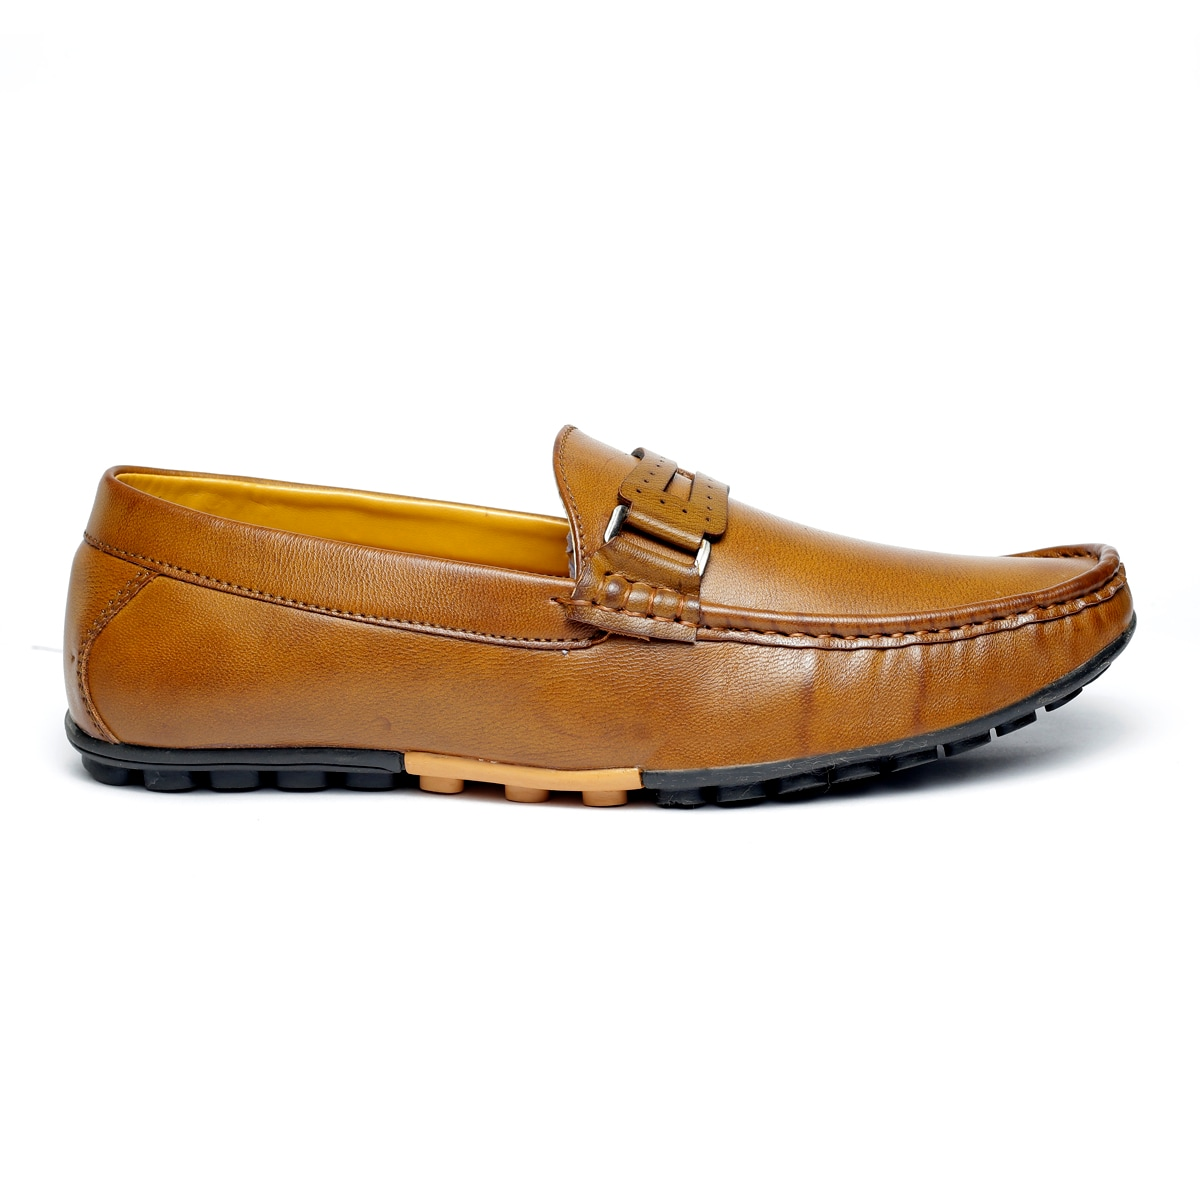 JK PORT COMFORTABLE, FASHIONABLE AND TRENDY LOAFERS JKPLF037TAN (TAN,6-10,8 PAIR)